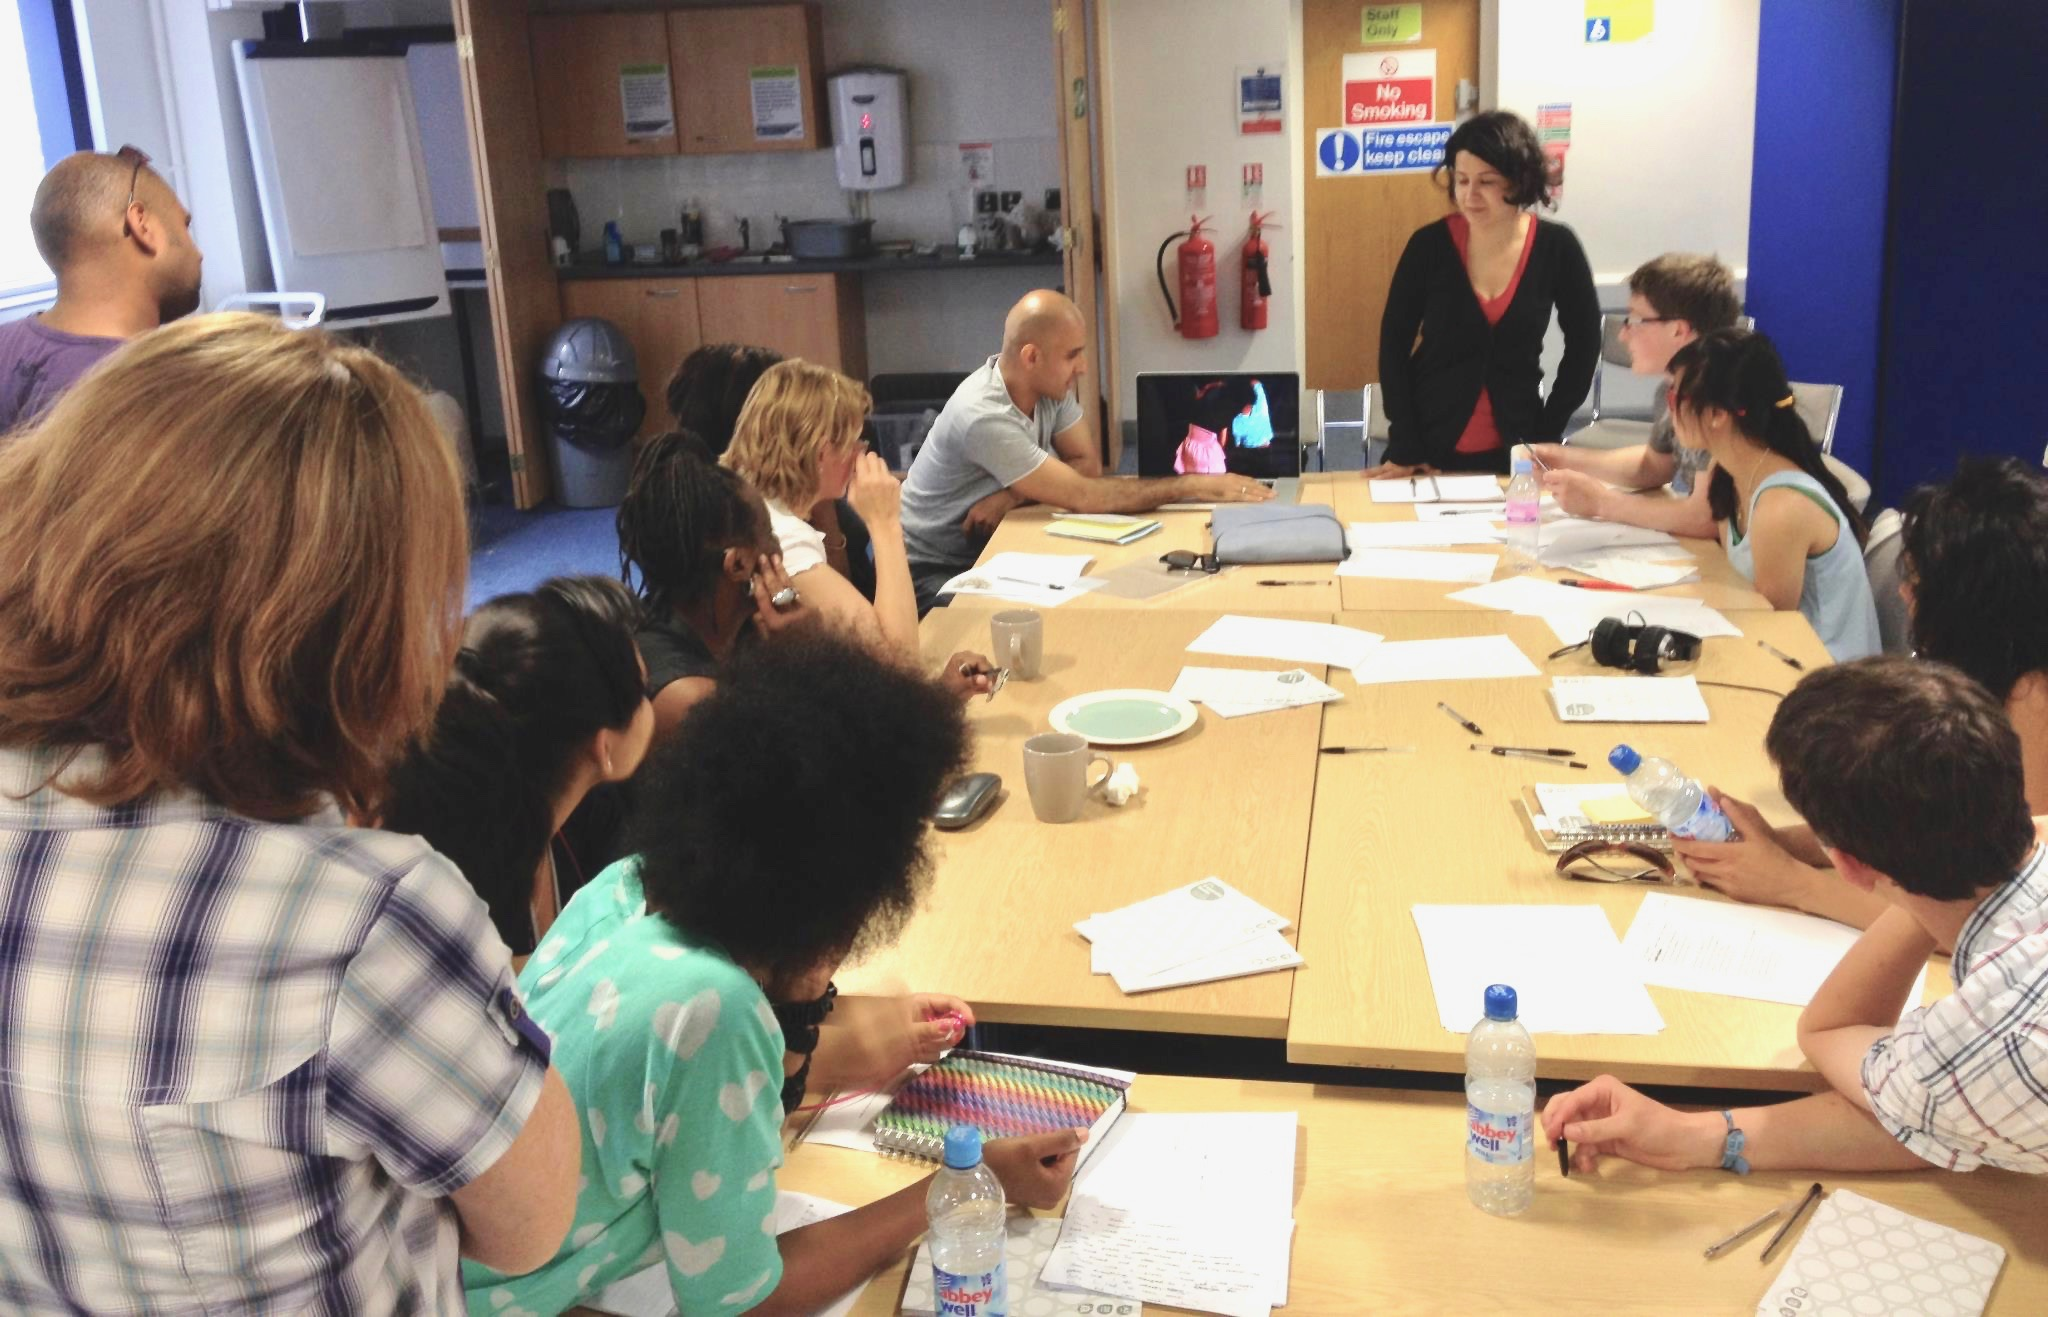 Creative Writing Workshop at City Arts